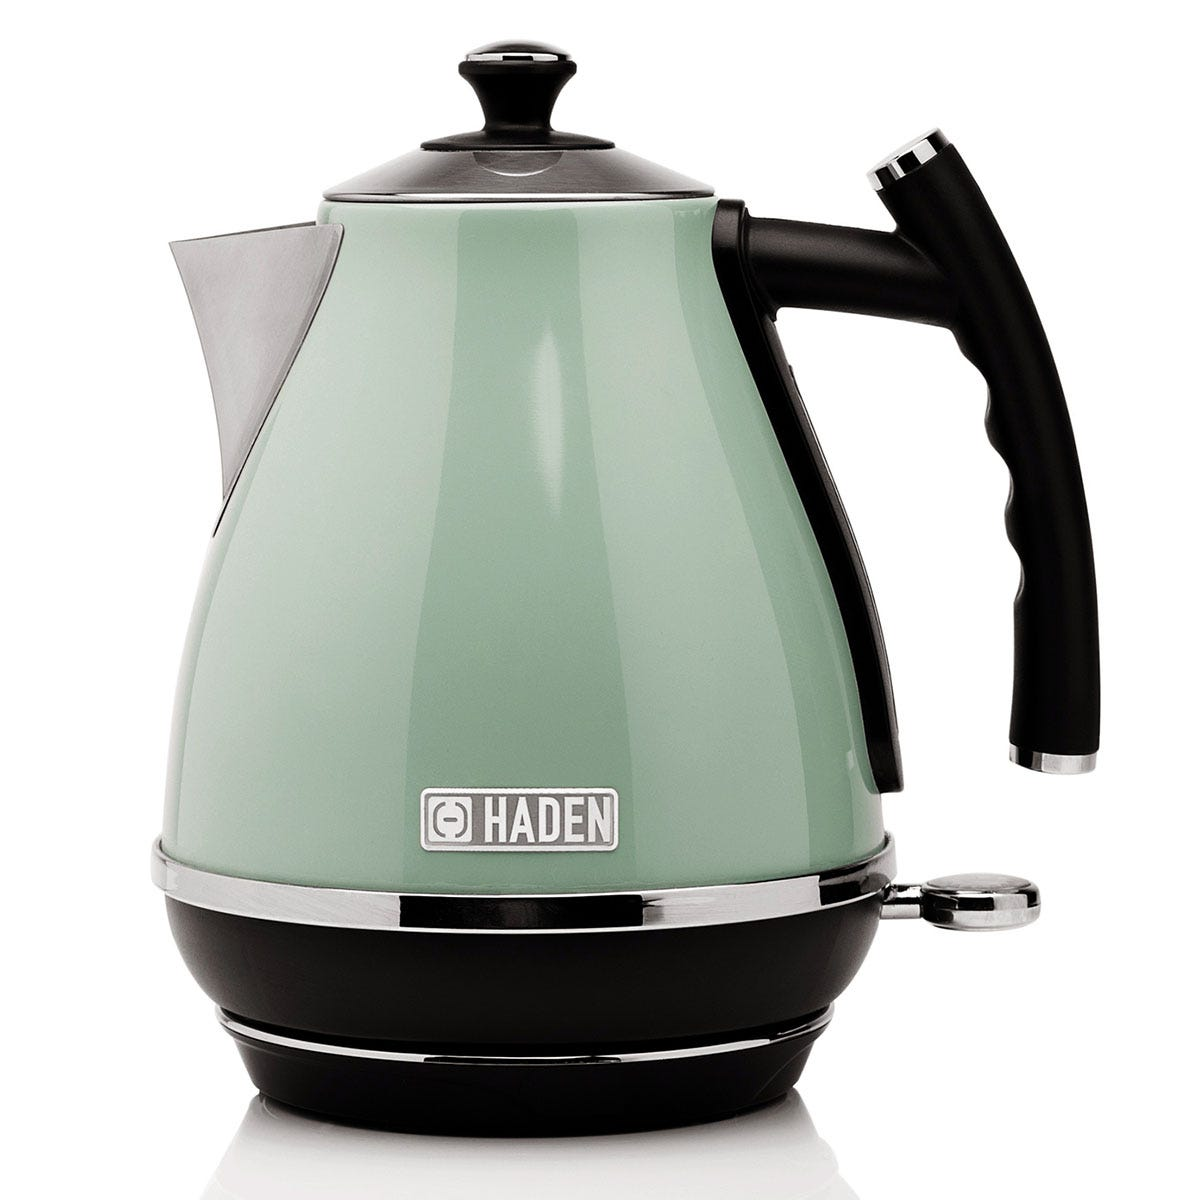 Haden 183538 Cotswold 1.7L 3000W Cordless Traditional Kettle - Sage